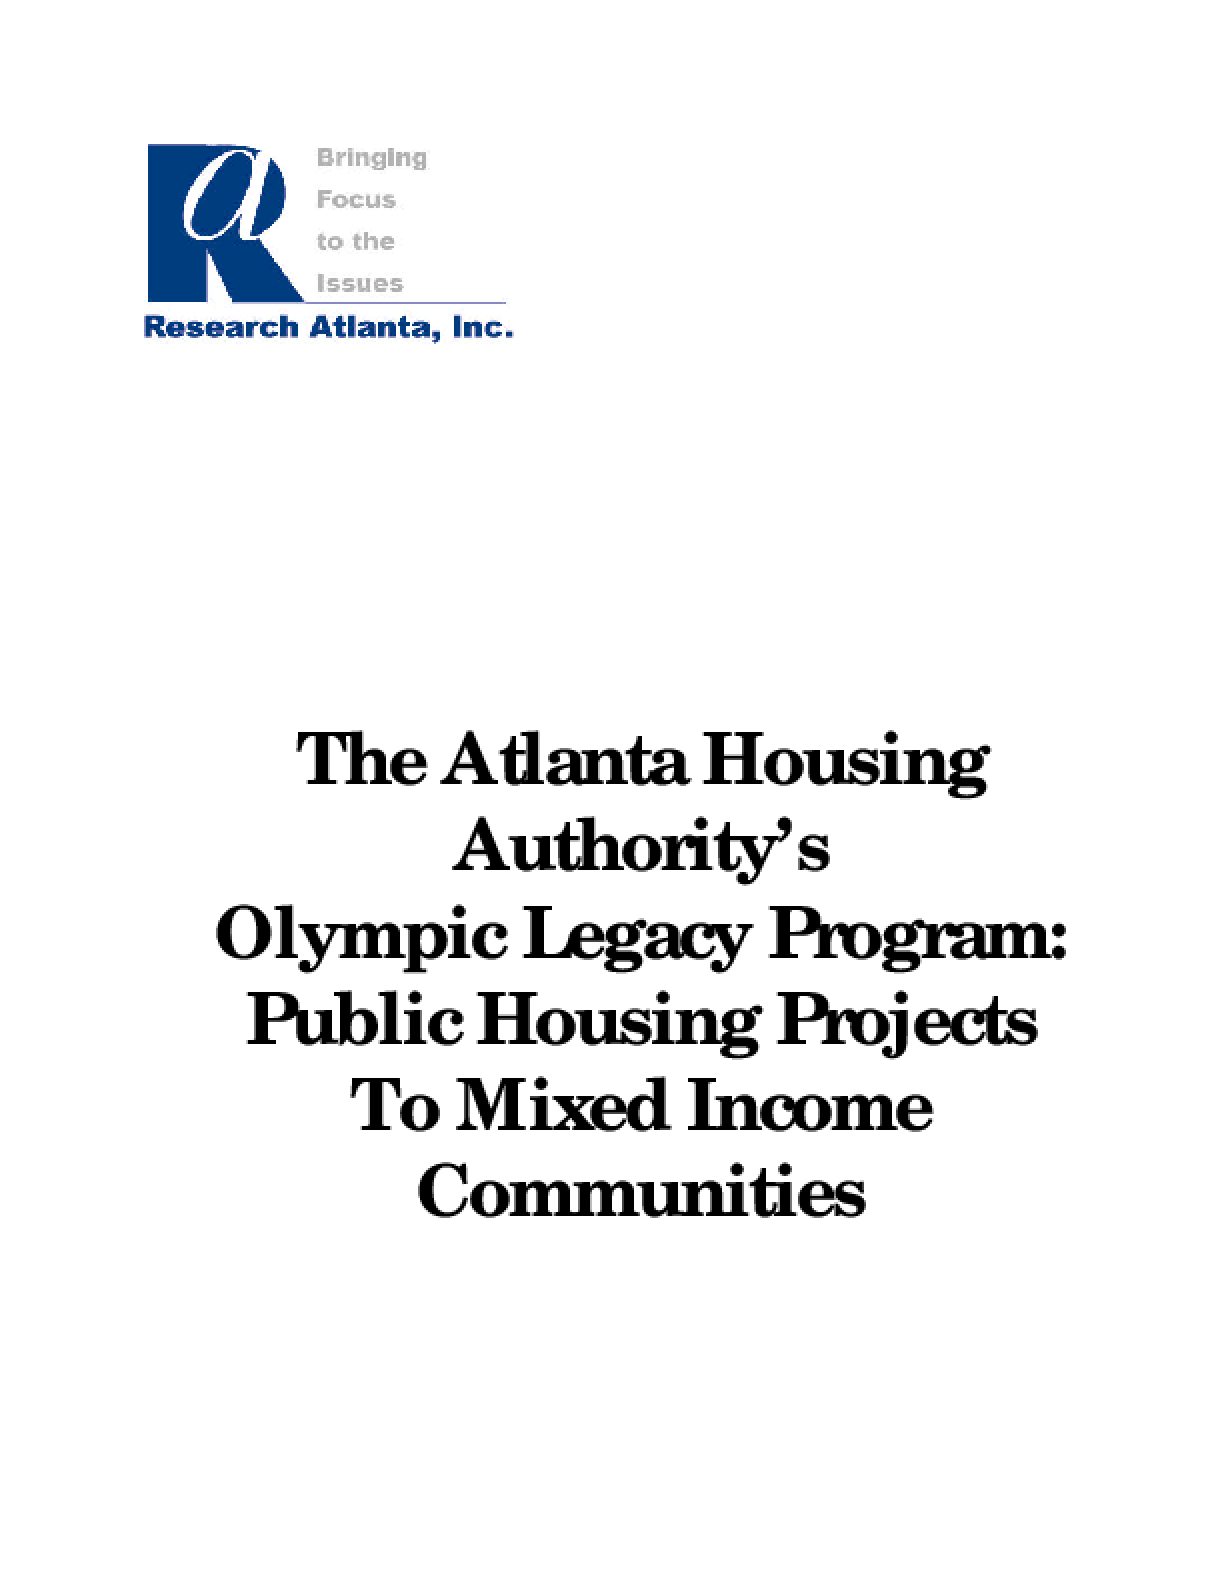 The Atlanta Housing Authority's Olympic Legacy Program: Public Housing Projects To Mixed Income Communities